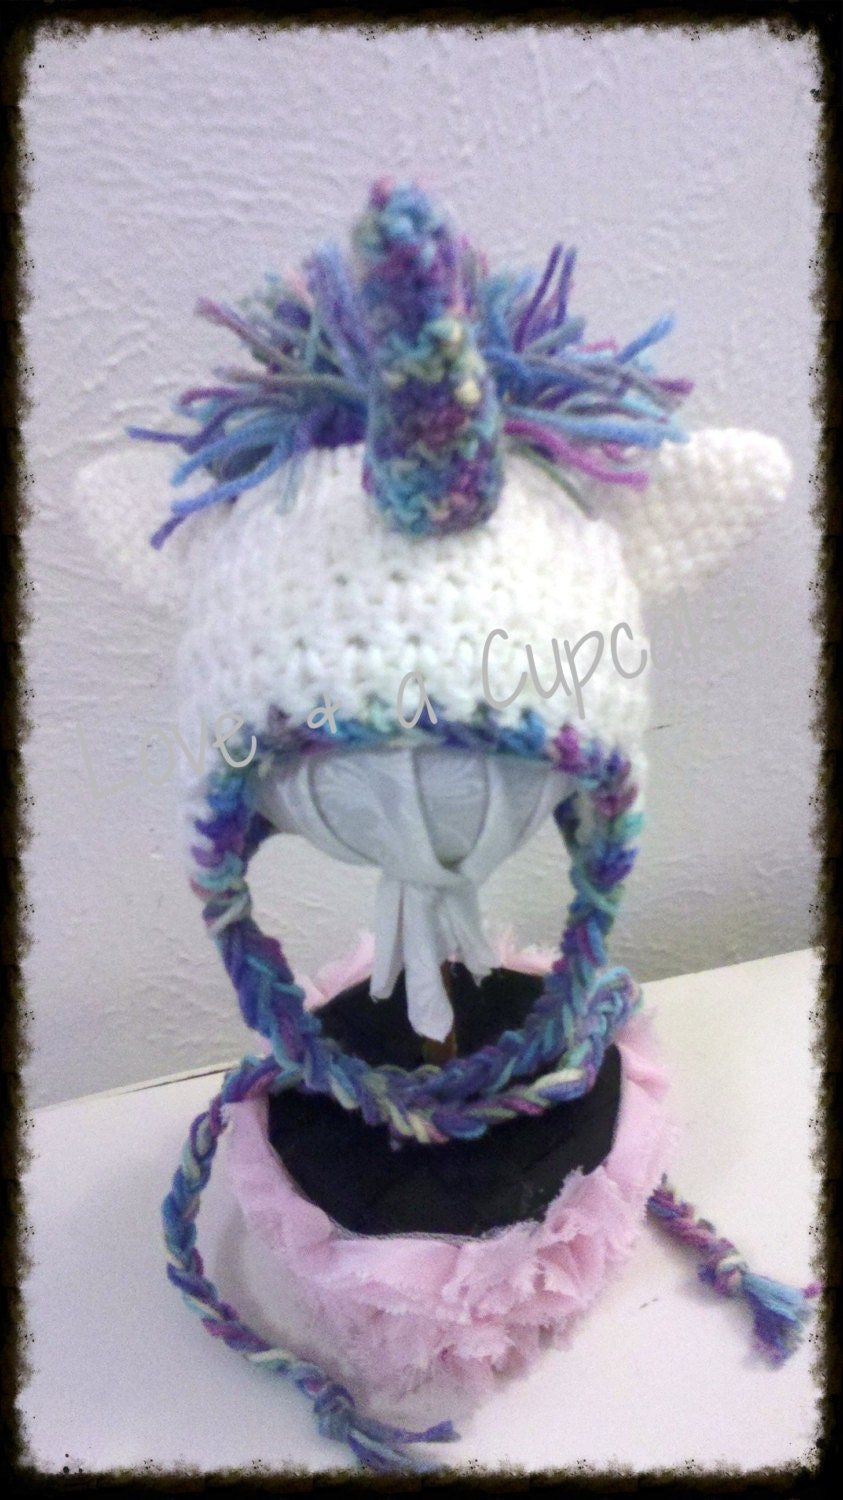 Crochet Unicorn Hat 0-6 months & 6-12 months by LoveNaCupcake